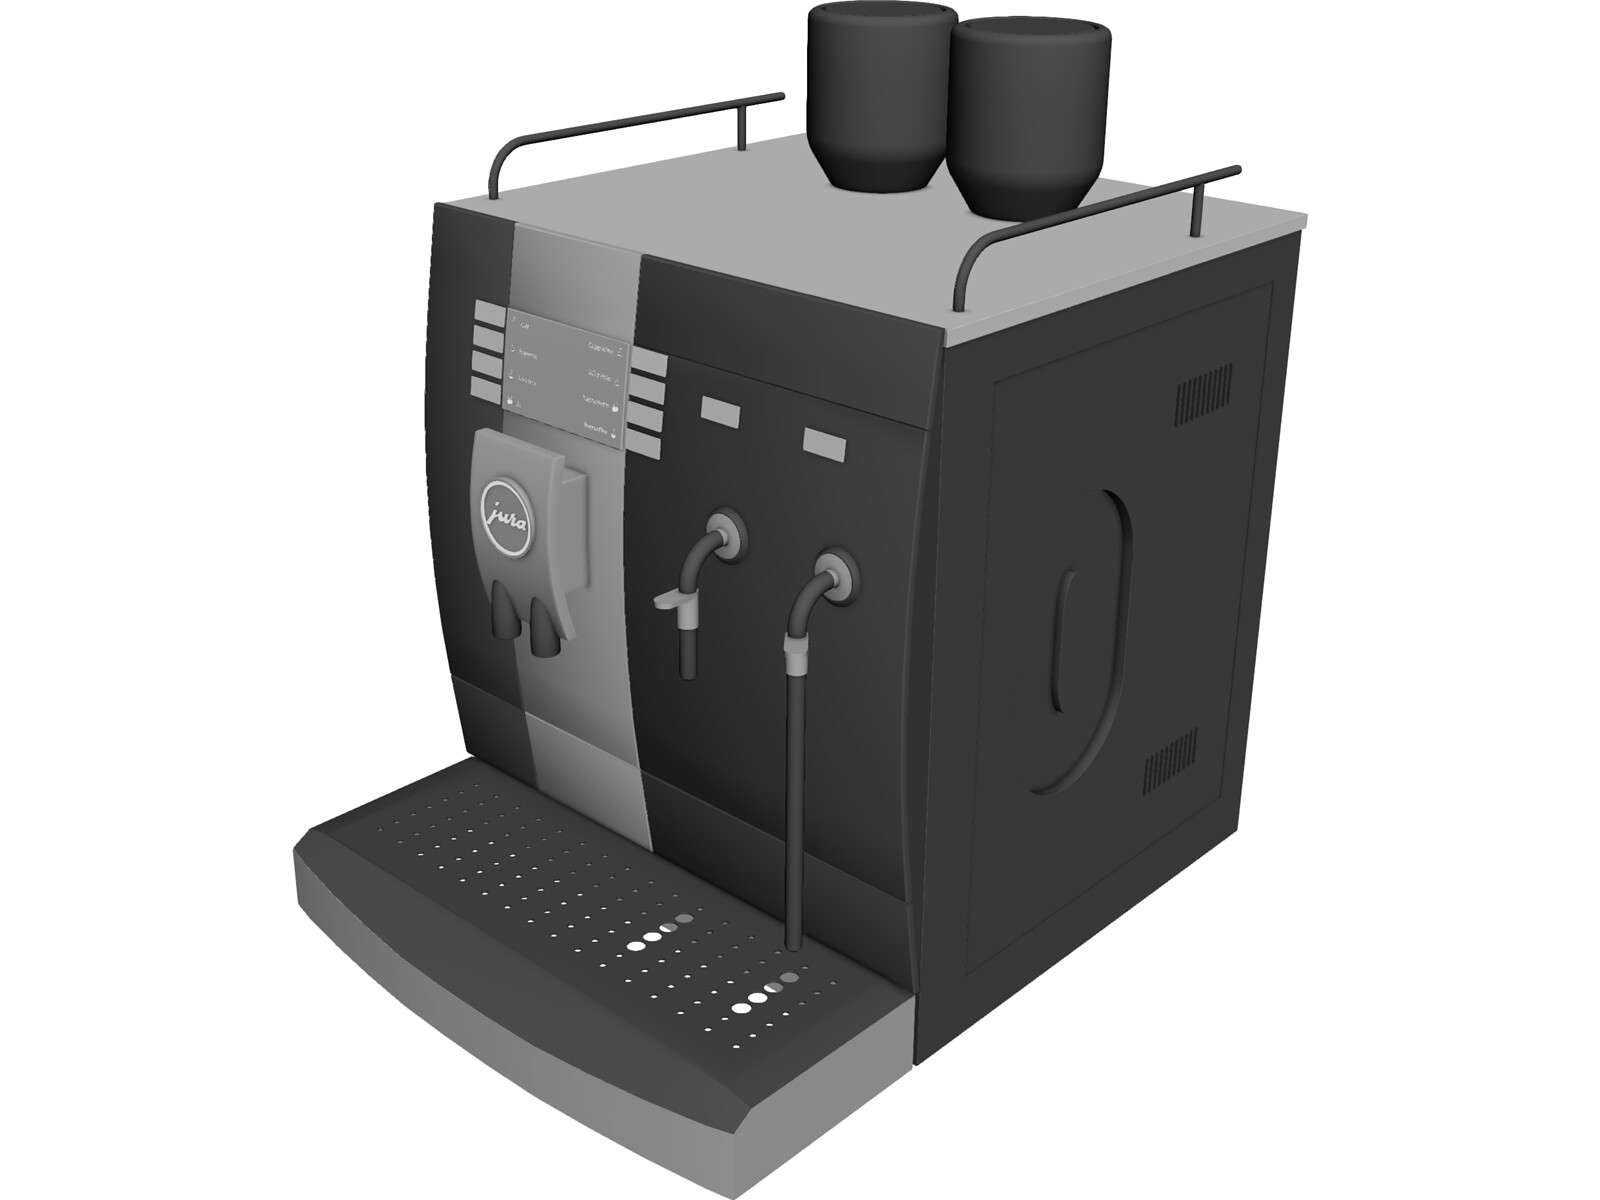 Coffee Maker Jura 3D Model